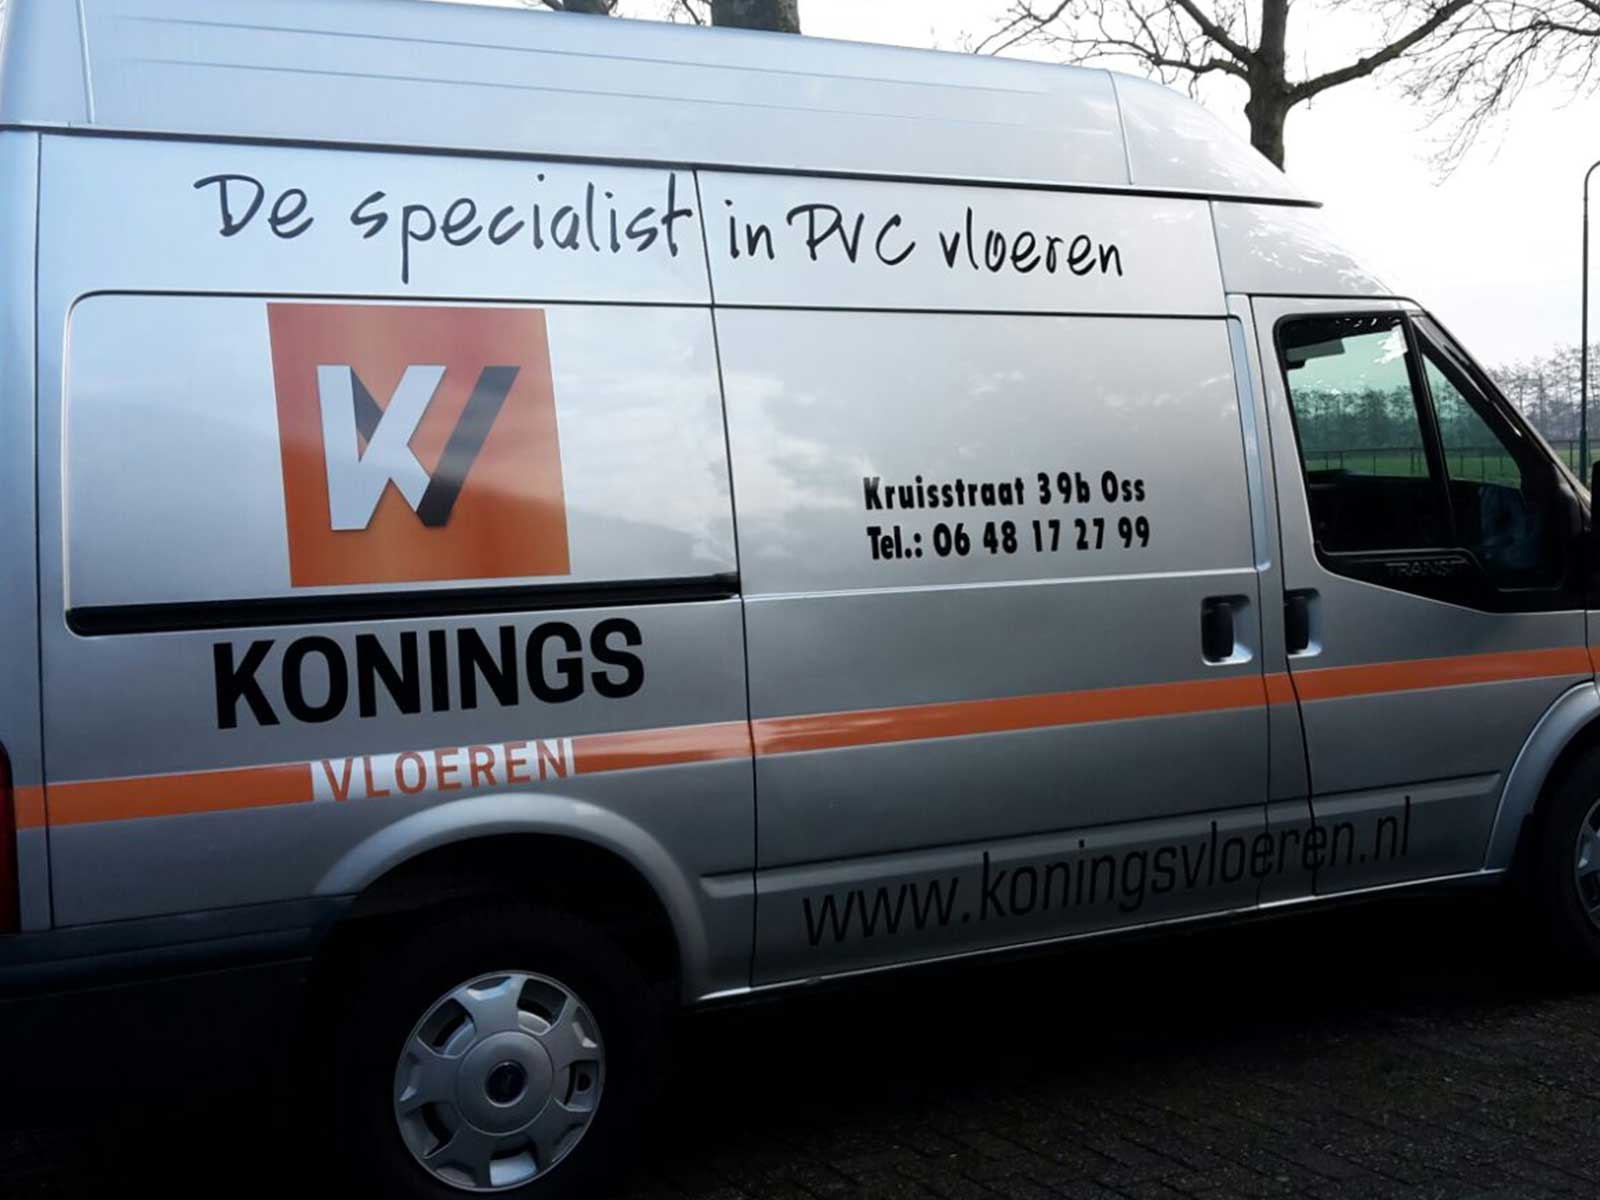 Koningsvloeren contact